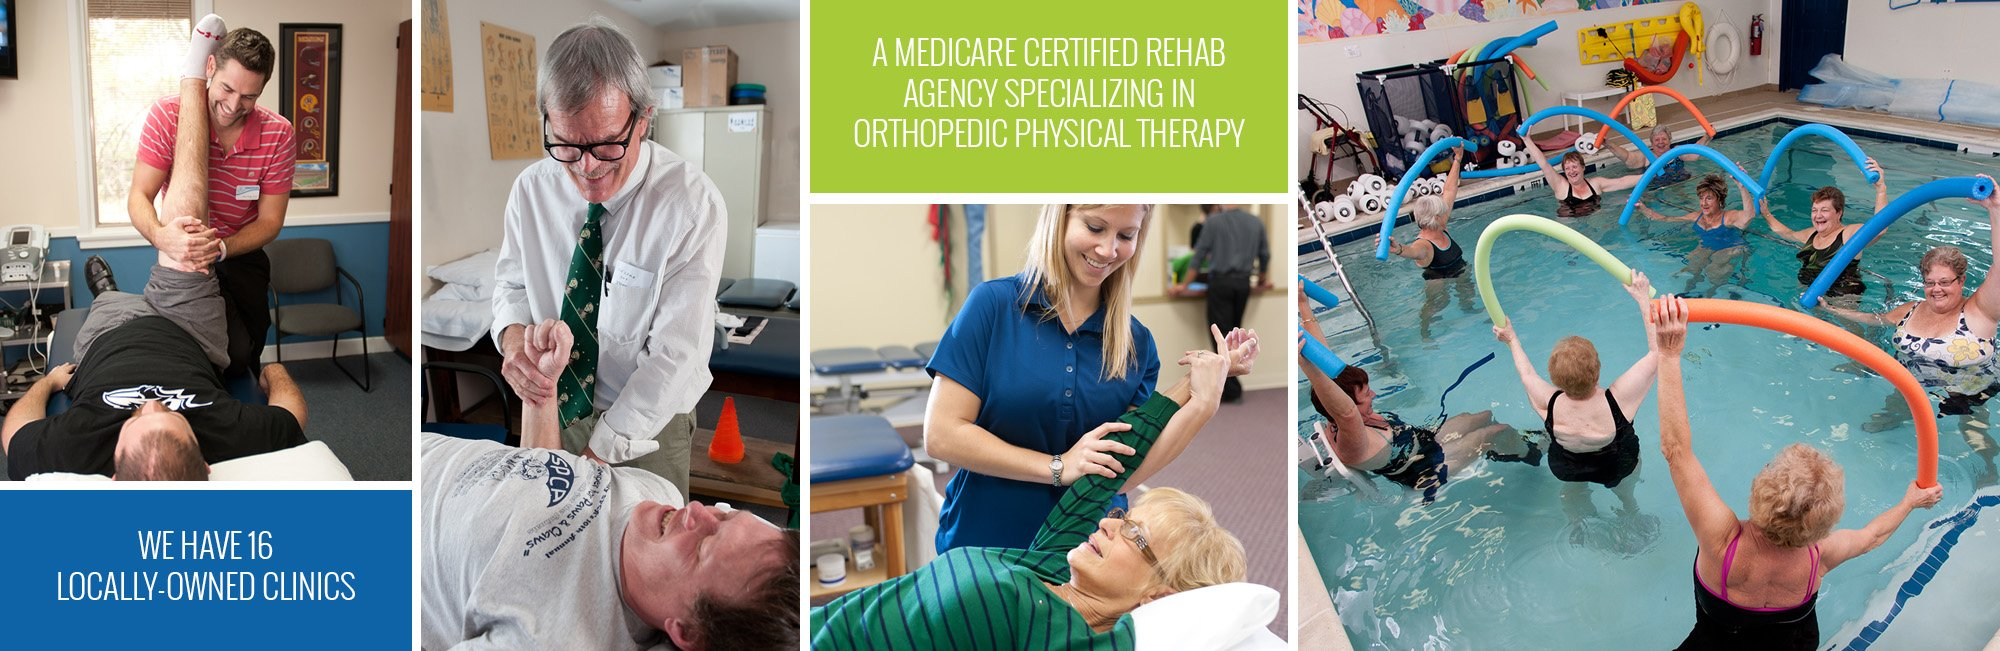 collage of therapists helping patients